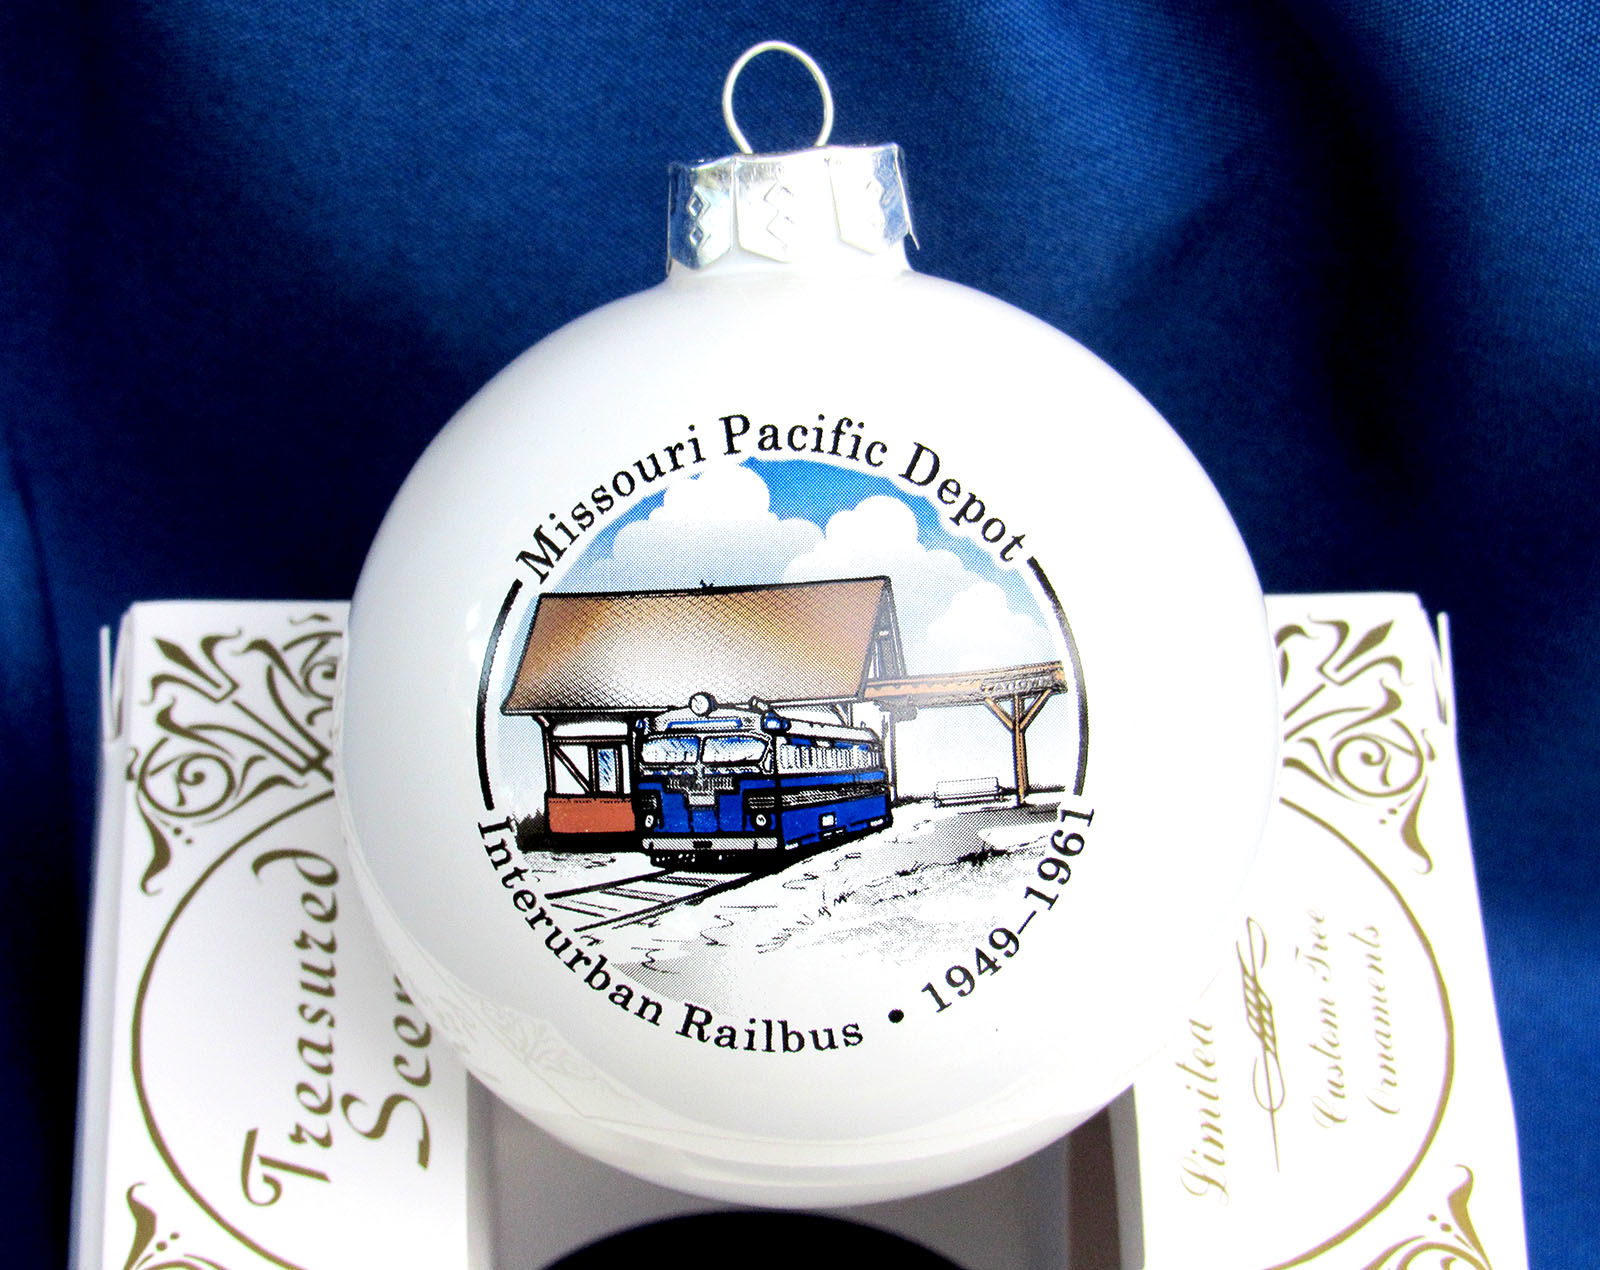 Holiday ornament pays tribute to old railbus system | News